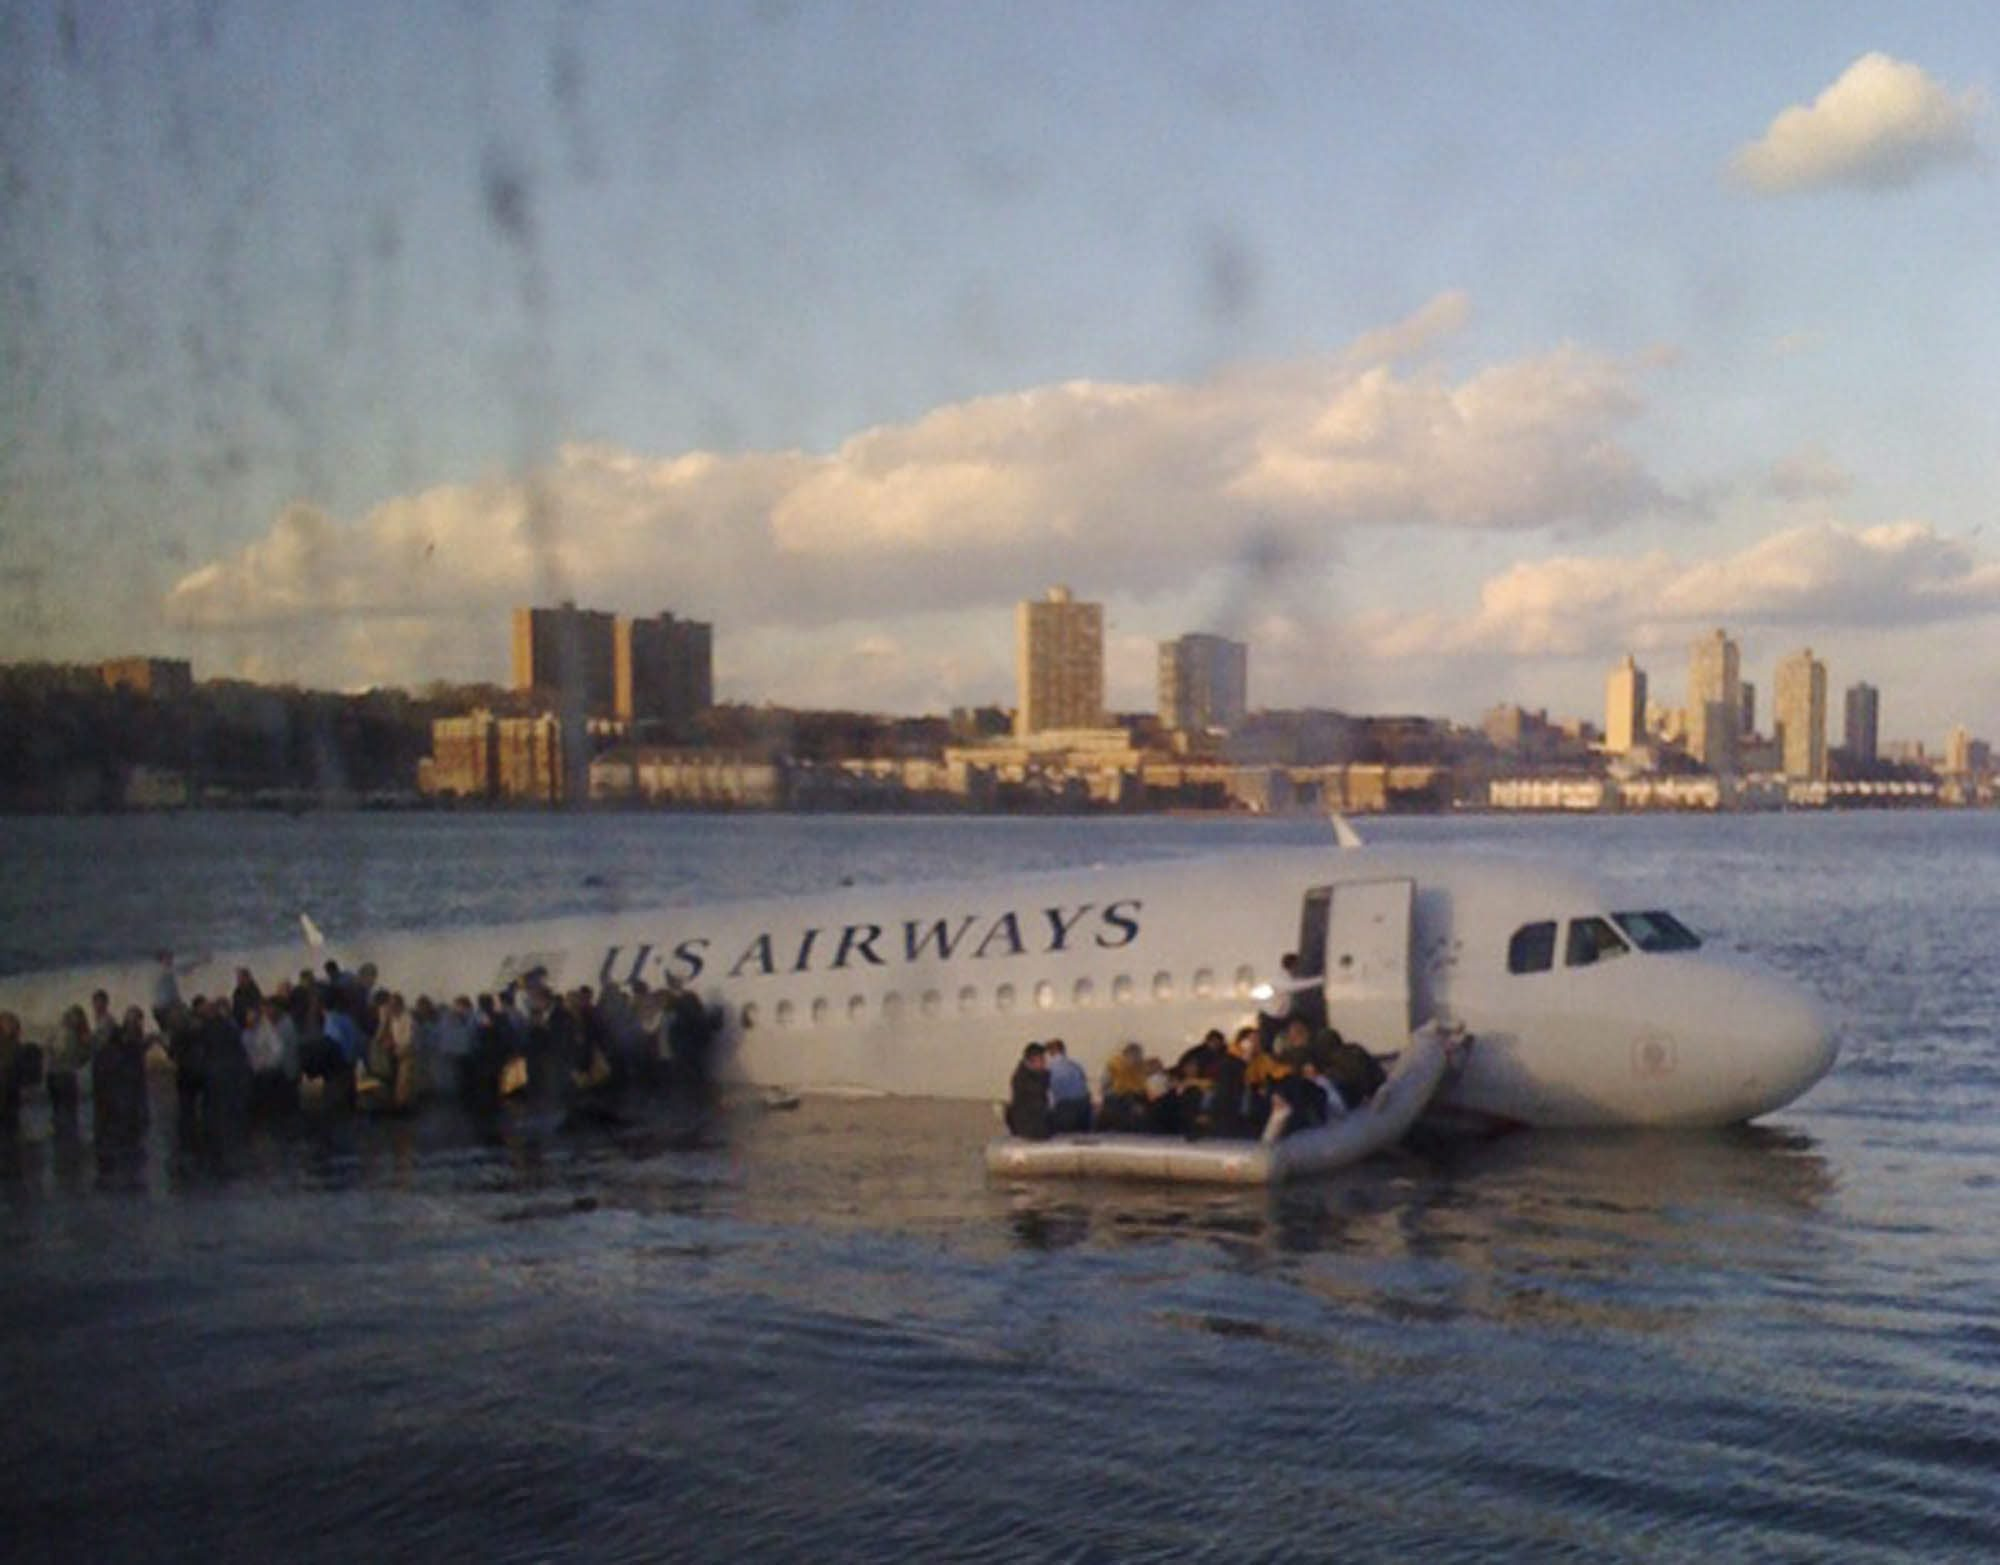 In this photo taken by a passenger on a ferry, airline passengers egress a US Airways Airbus 320 jetliner that safely ditched in the frigid waters of the Hudson River in New York, Thursday Jan. 15, 2009 after a flock of birds knocked out both its engines. All 155 people on board survived. (AP Photo/Janis Krums)